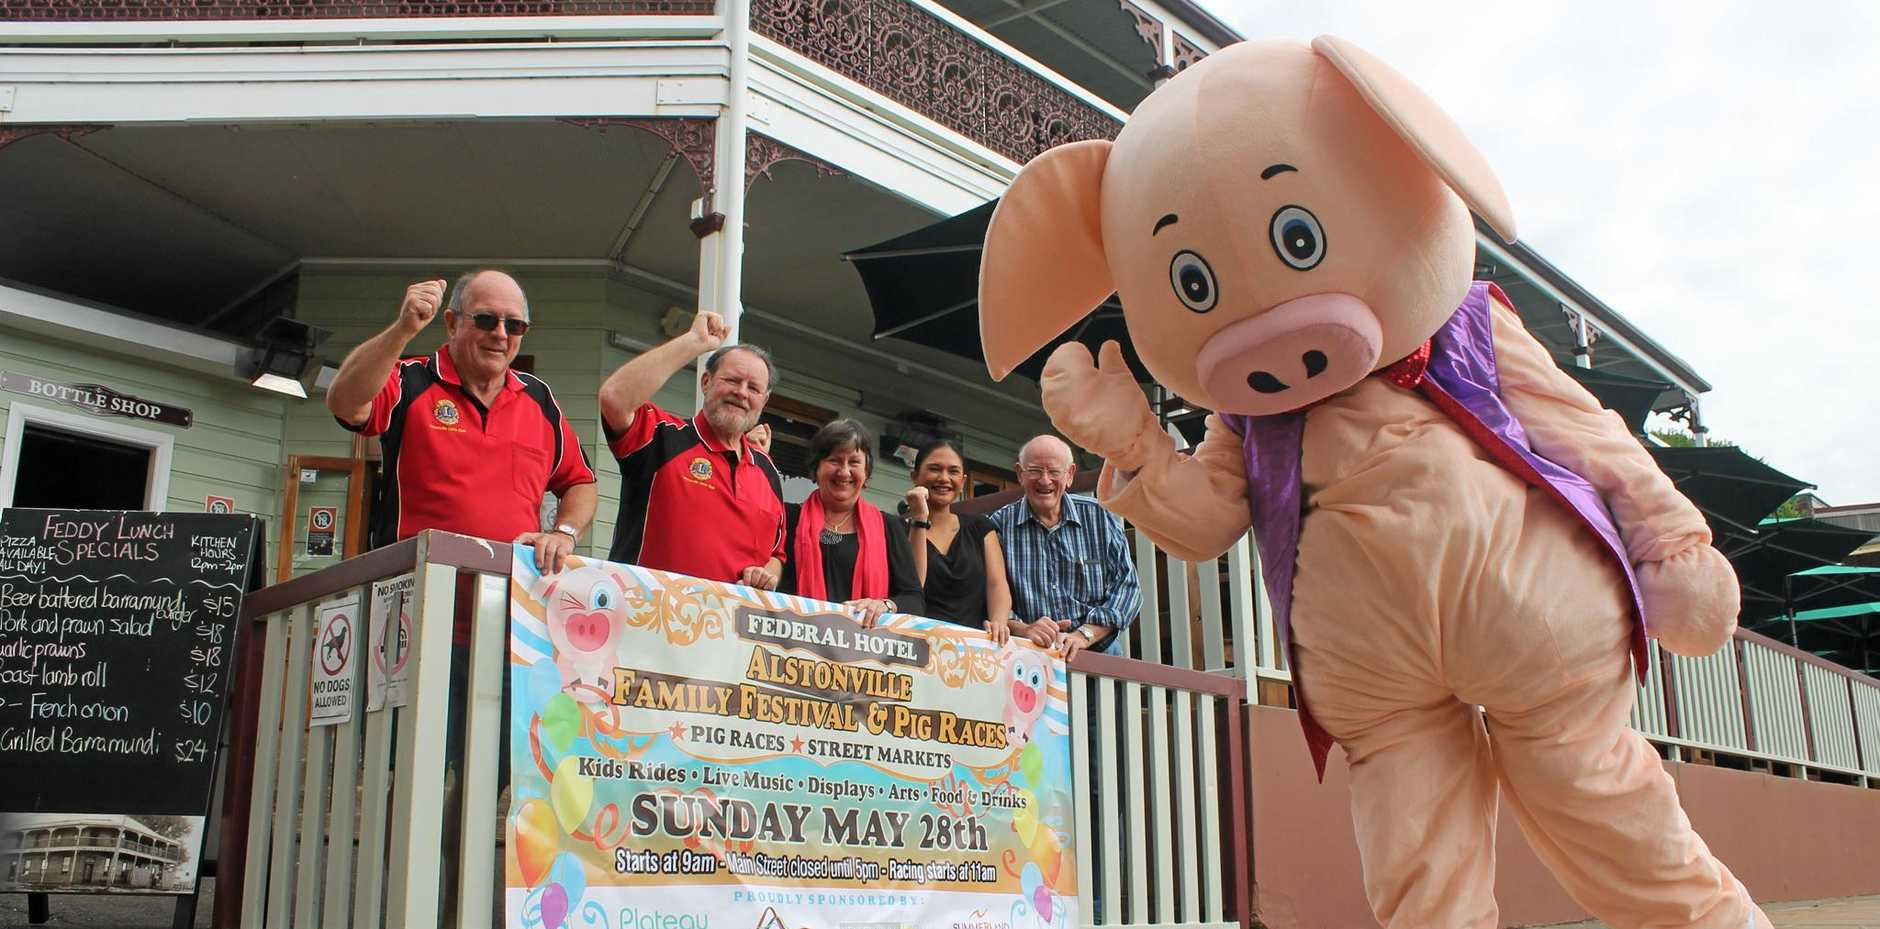 RUN, PIGGY, RUN: Members of the Alstonville Lions Club and the Alstonville-Wollongbar Chamber of Commerce join Federal Hotel staff in cheering on the pig promoting the Alstonville Family Festival.